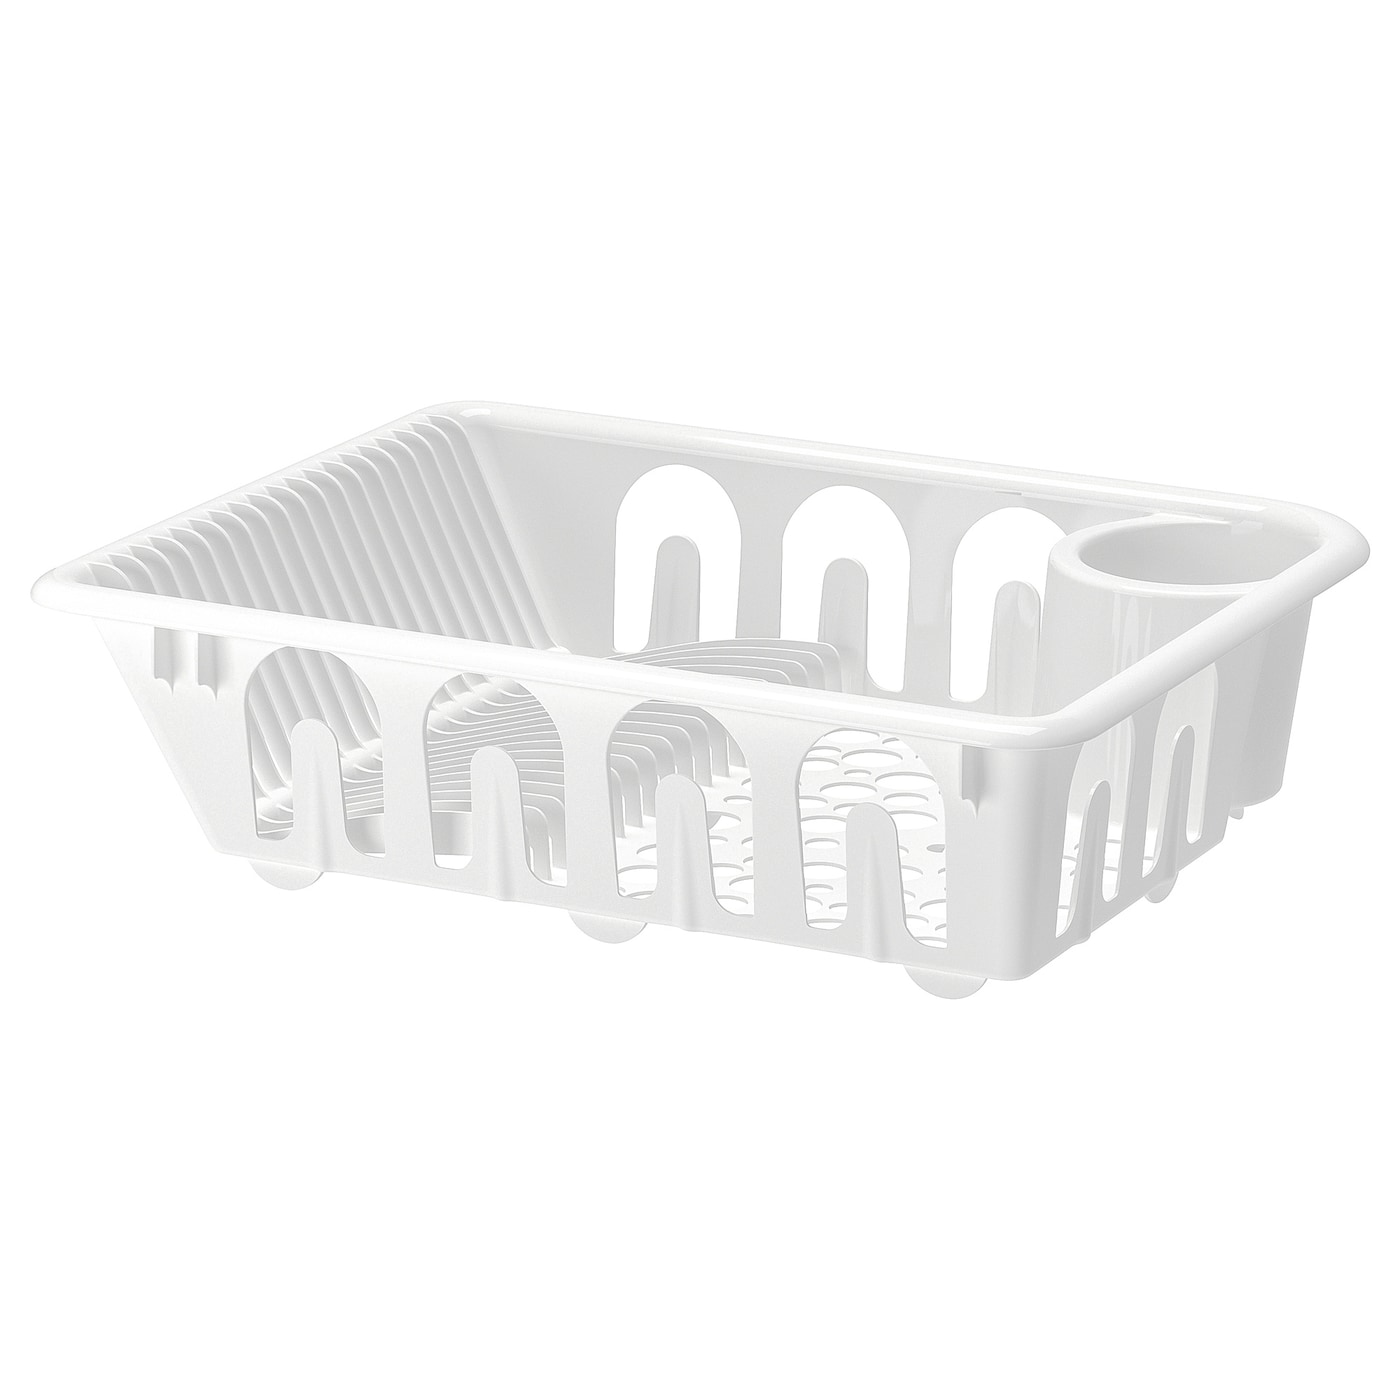 IKEA FLUNDRA dish drainer Holds large plates with a dia. up to 32 cm as well.